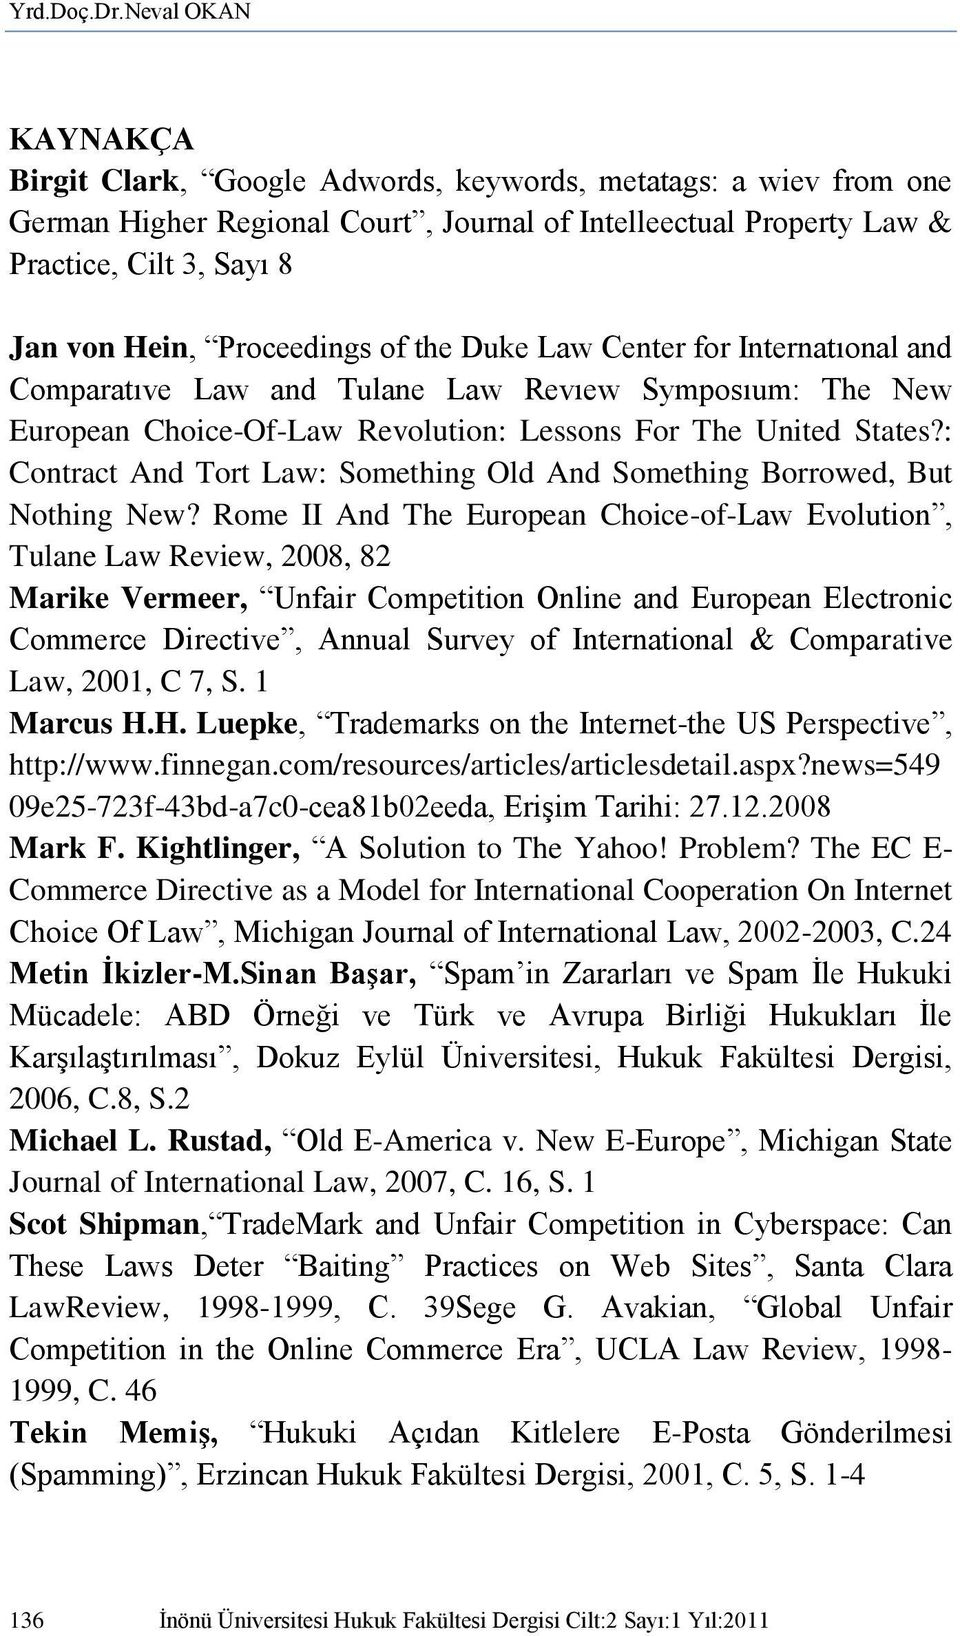 Proceedings of the Duke Law Center for Internatıonal and Comparatıve Law and Tulane Law Revıew Symposıum: The New European Choice-Of-Law Revolution: Lessons For The United States?